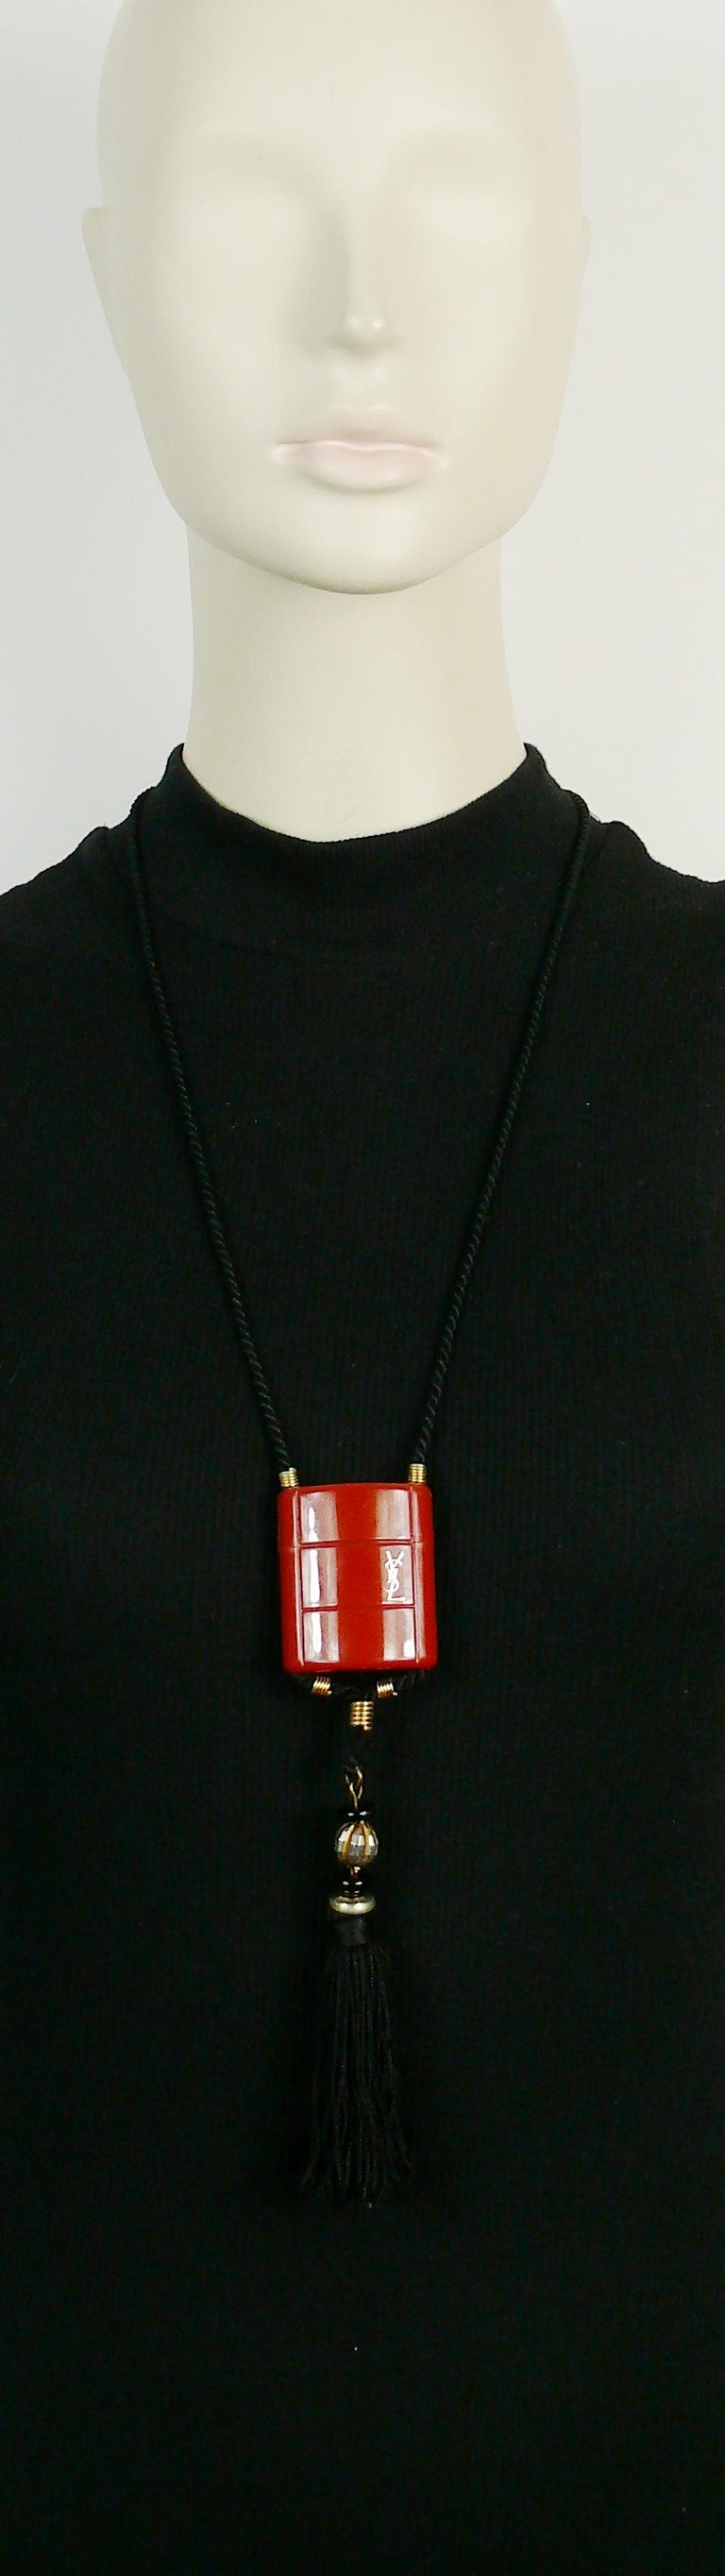 YVES SAINT LAURENT vintage OPIUM inro pendant necklace.  This necklace consists of a black cord, a burnt orange plastic container, a silk tassel adorned with black and gold tone beads.  Plastic container opens to insert a miniature bottle (empty